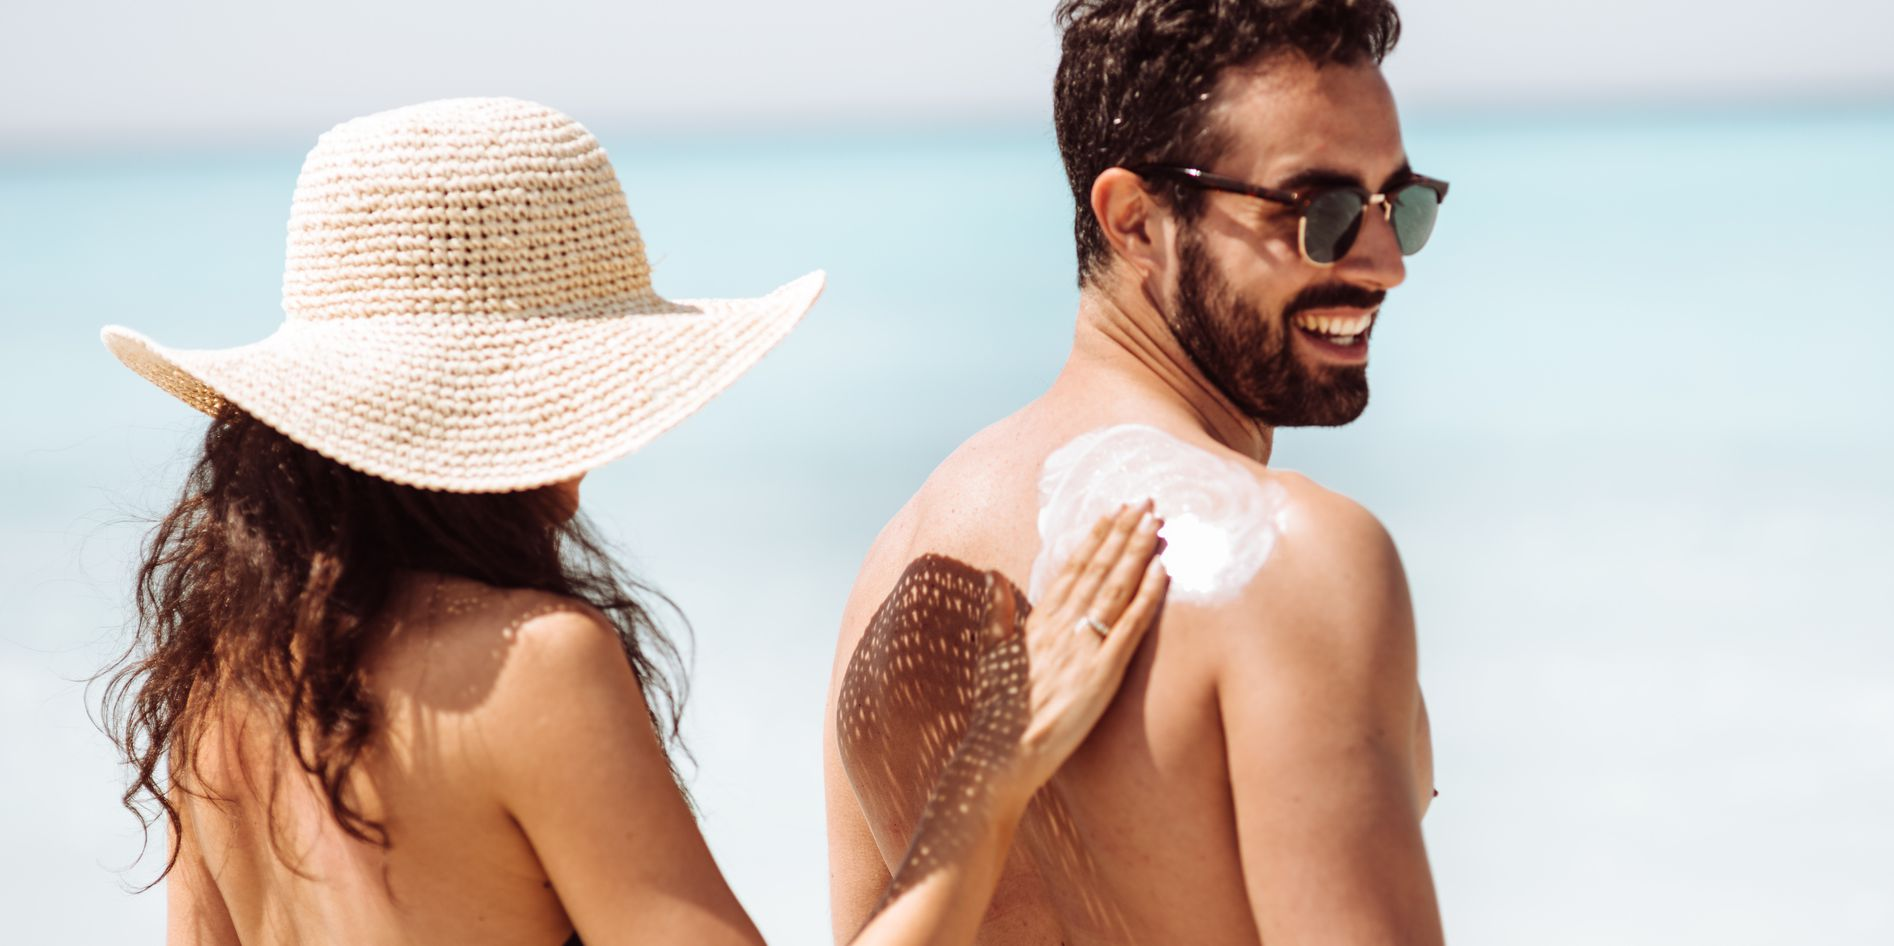 People Are Making Sunscreen at Home and It's a Really Bad Idea